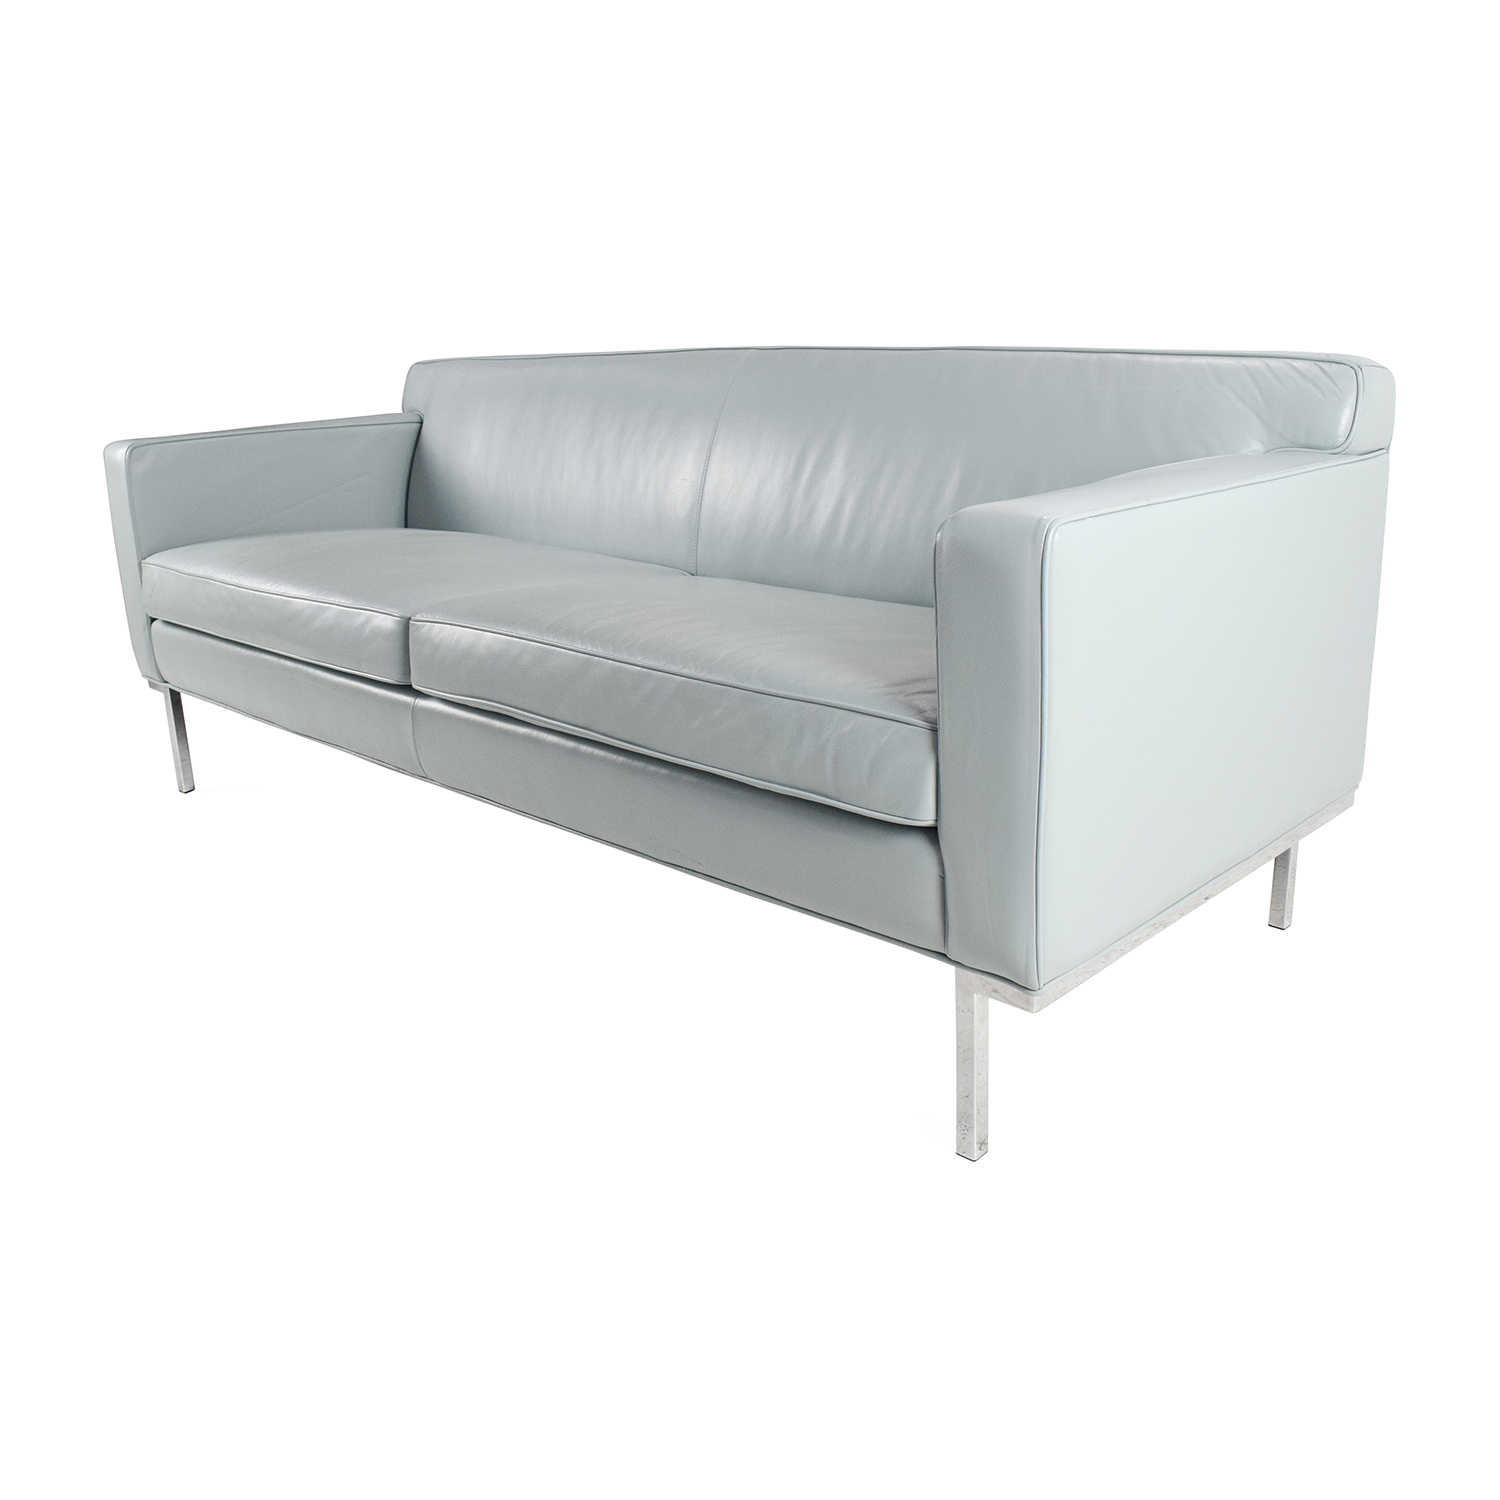 dwr theatre sofa review roll arm 70 off design within reach theater